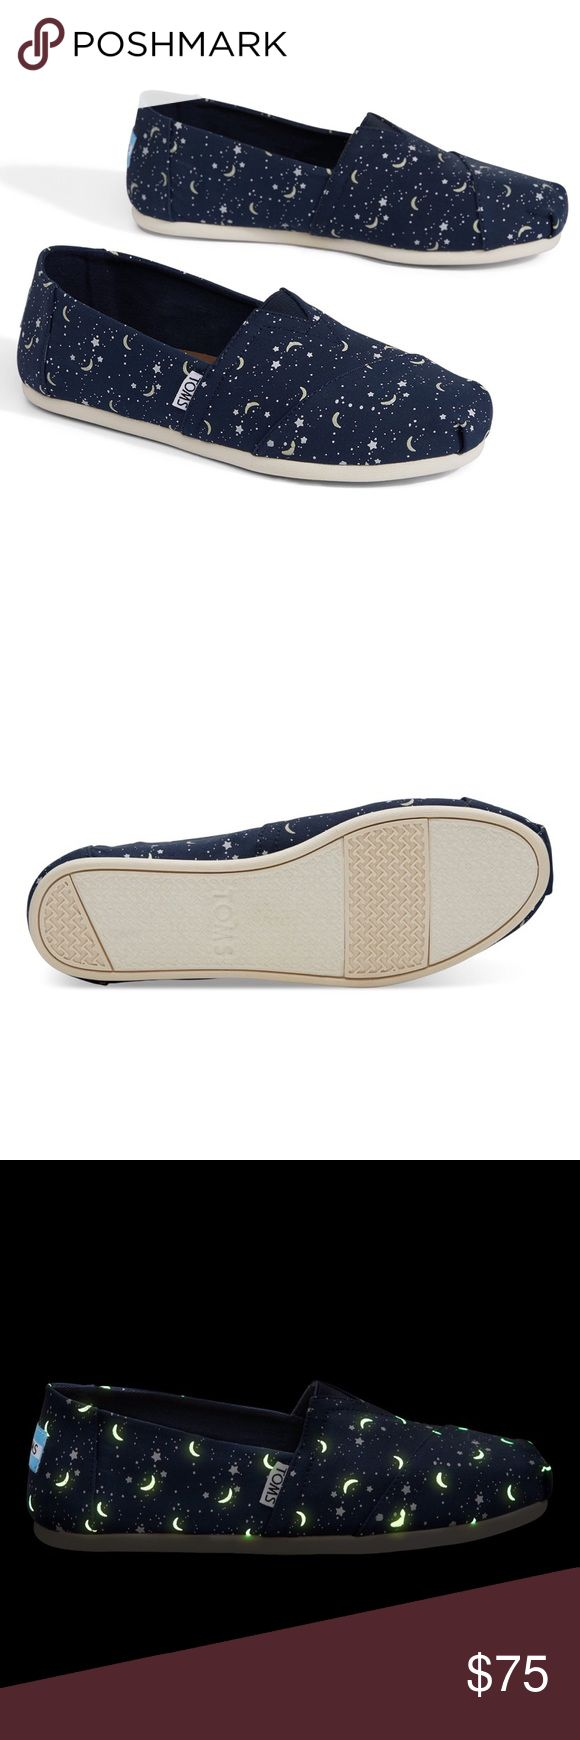 "🌙TOMS GLOW IN THE DARK MOON AND STARS WOMEN Moonwalk through your day in out-of-this-world Alpargatas that glow in the dark. Navy moon and stars printed canvas upper Classic Alpargata design Glow in the dark Vegan Elastic ""v"" for easy on/off Molded removable insole Funk-fighting cotton twill sock liner Rubber outsole for traction PRICE IS FIRM; no offers. I will keep these if they don't sell for the list price. Toms Shoes Flats & Loafers"